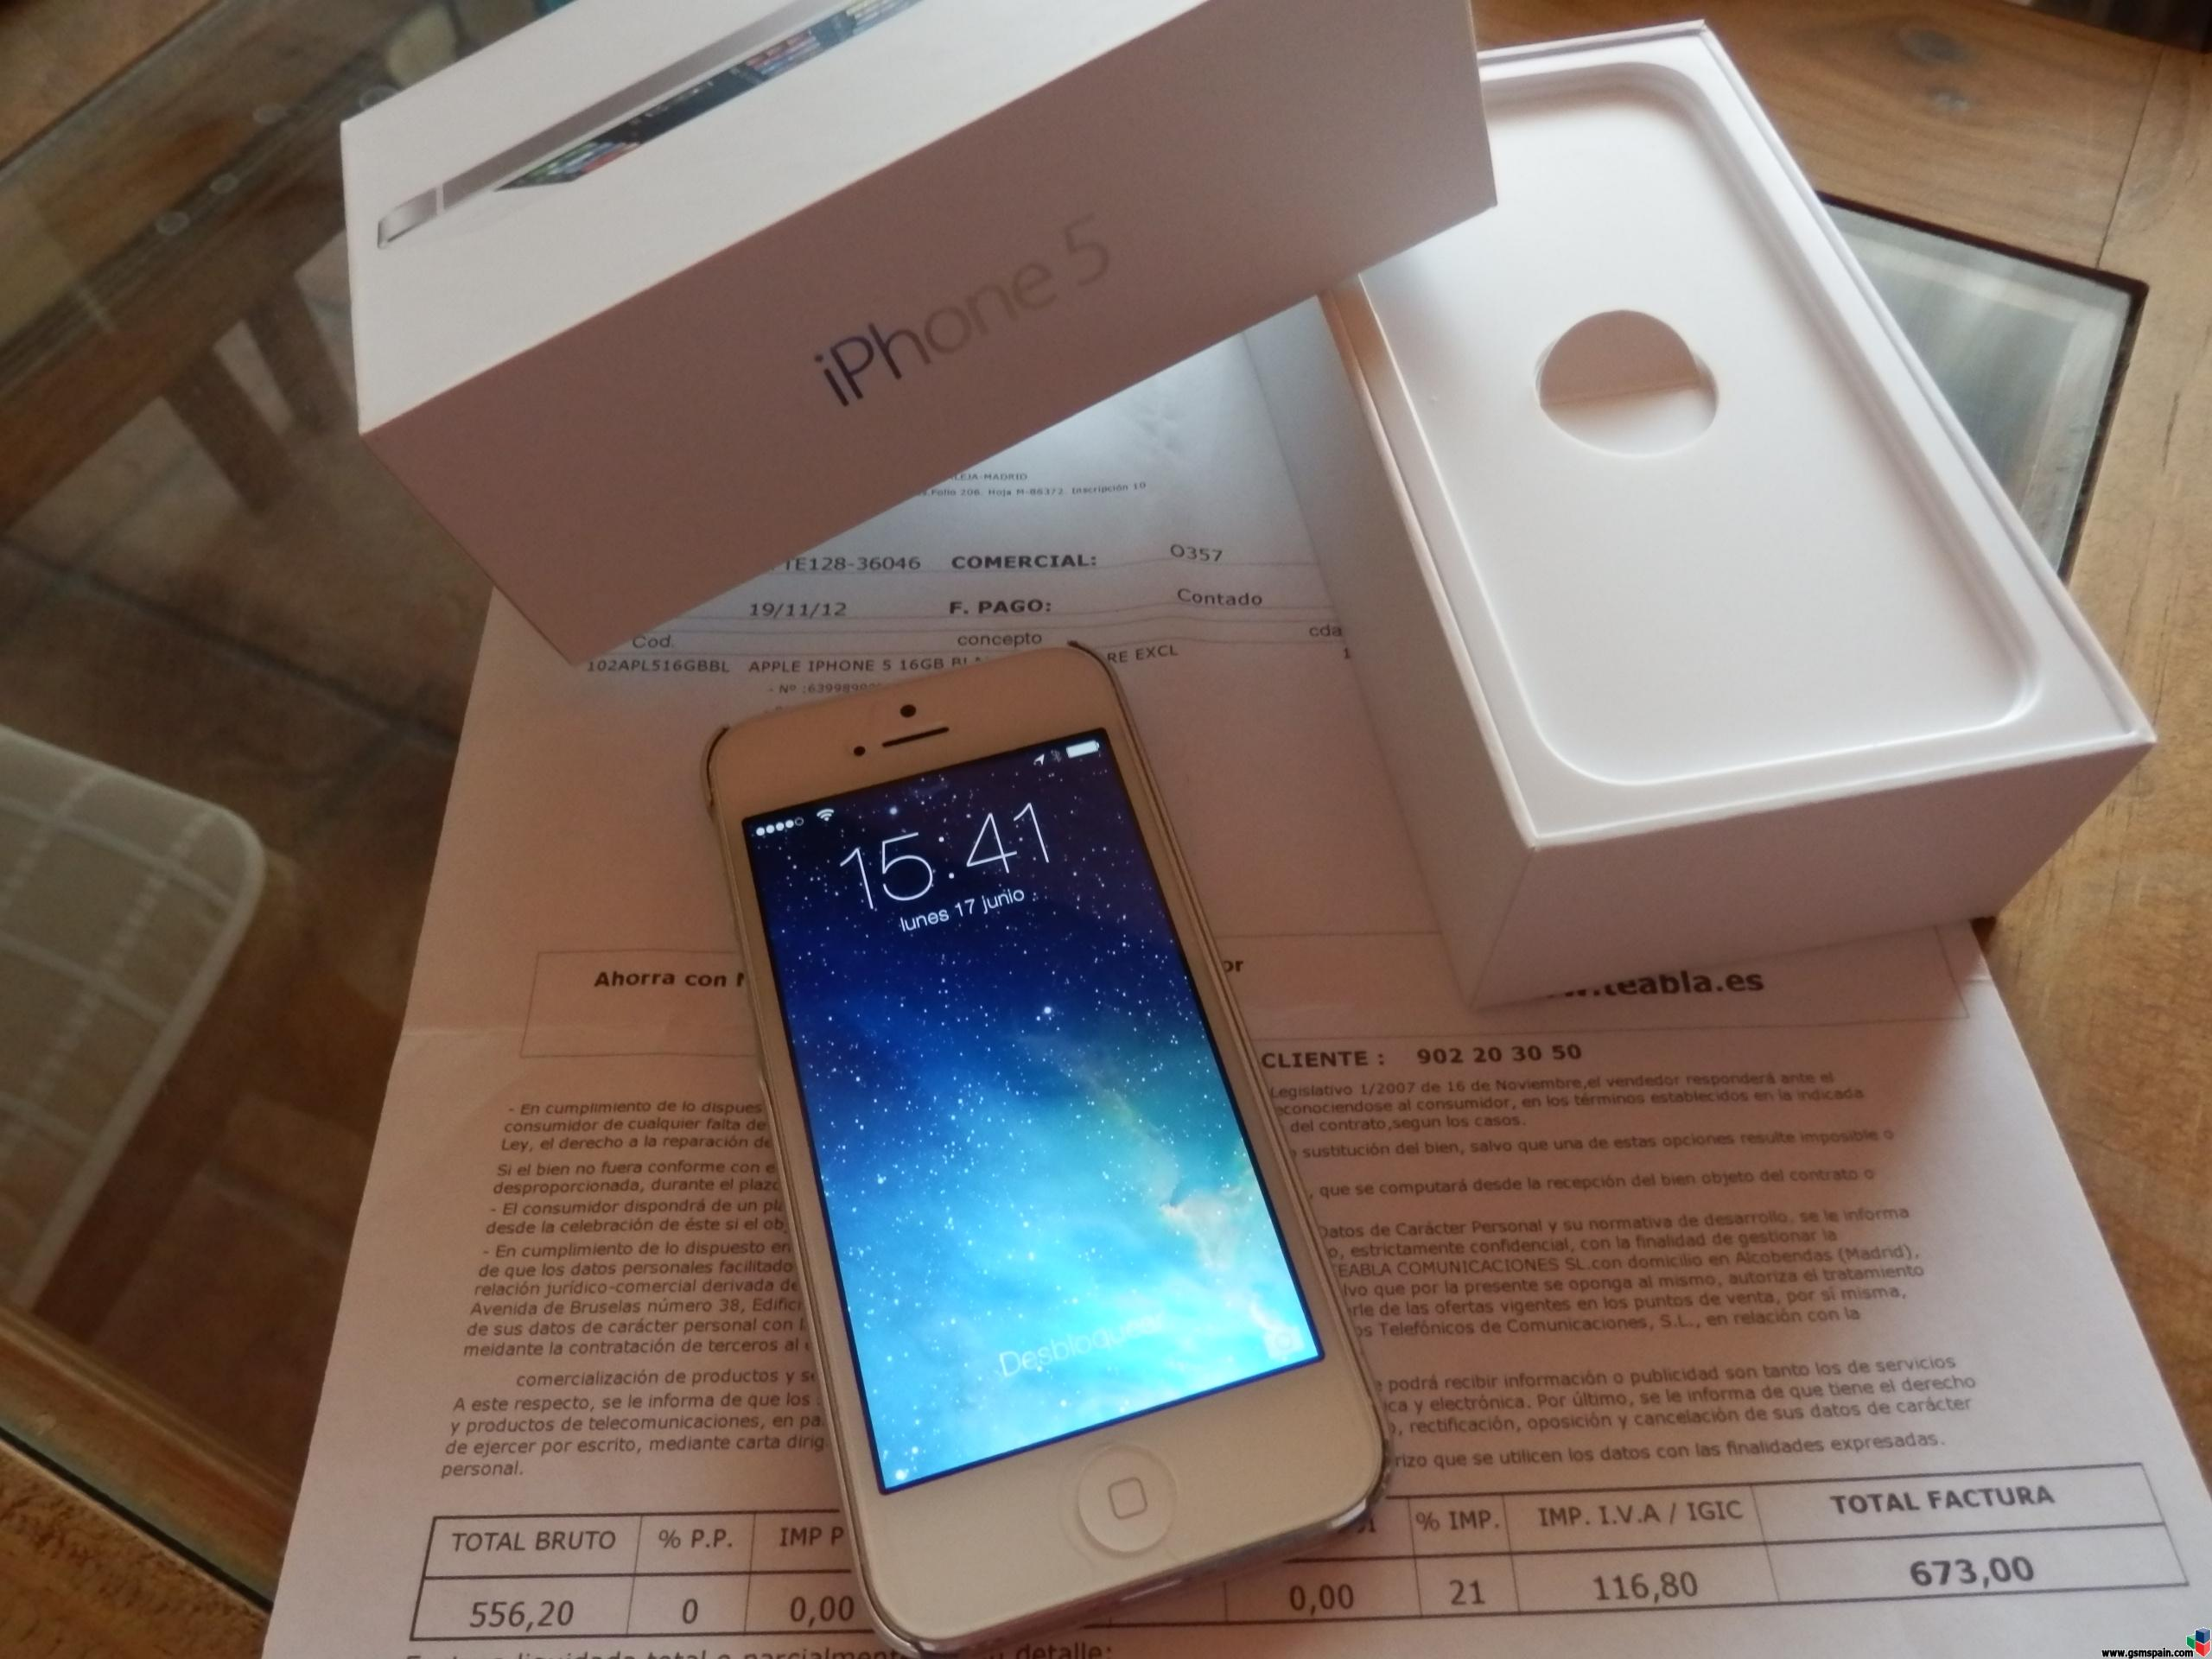 Phone House Iphone 5 Libre Vendo Iphone 5 Libre Blanco 16gb Ios 7